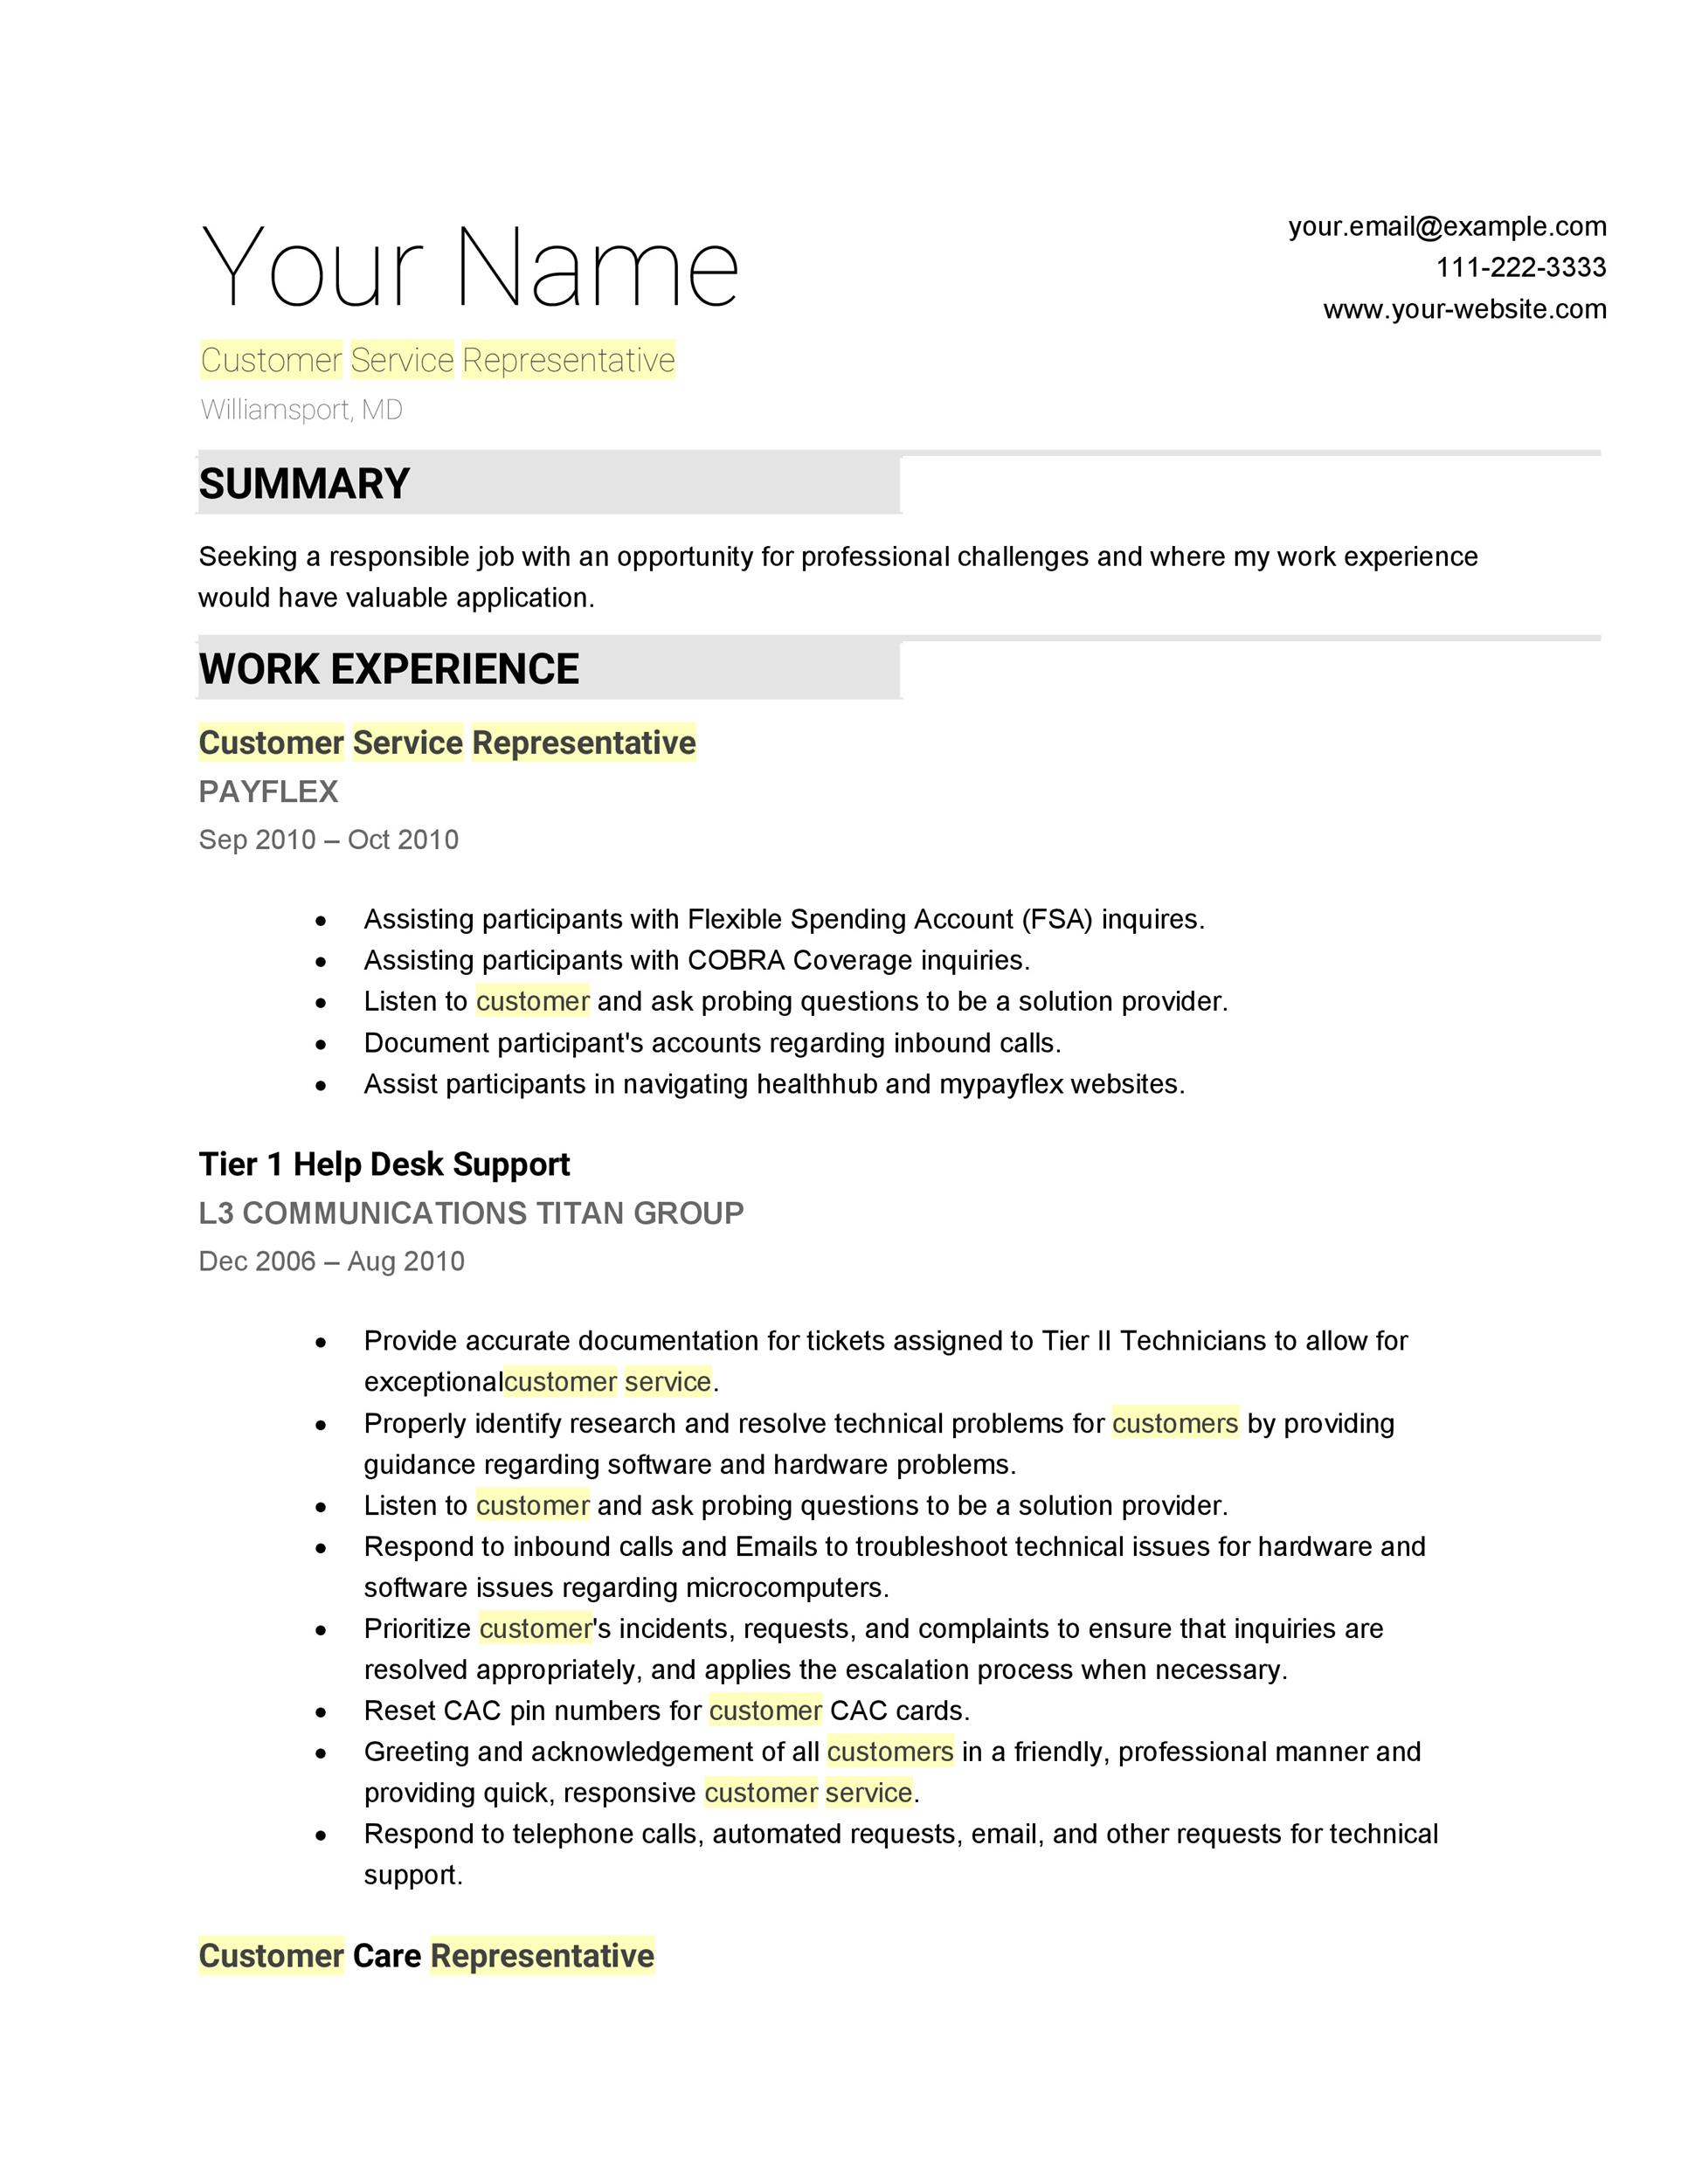 Delighted free resume samples for customer service for Free resume examples for customer service